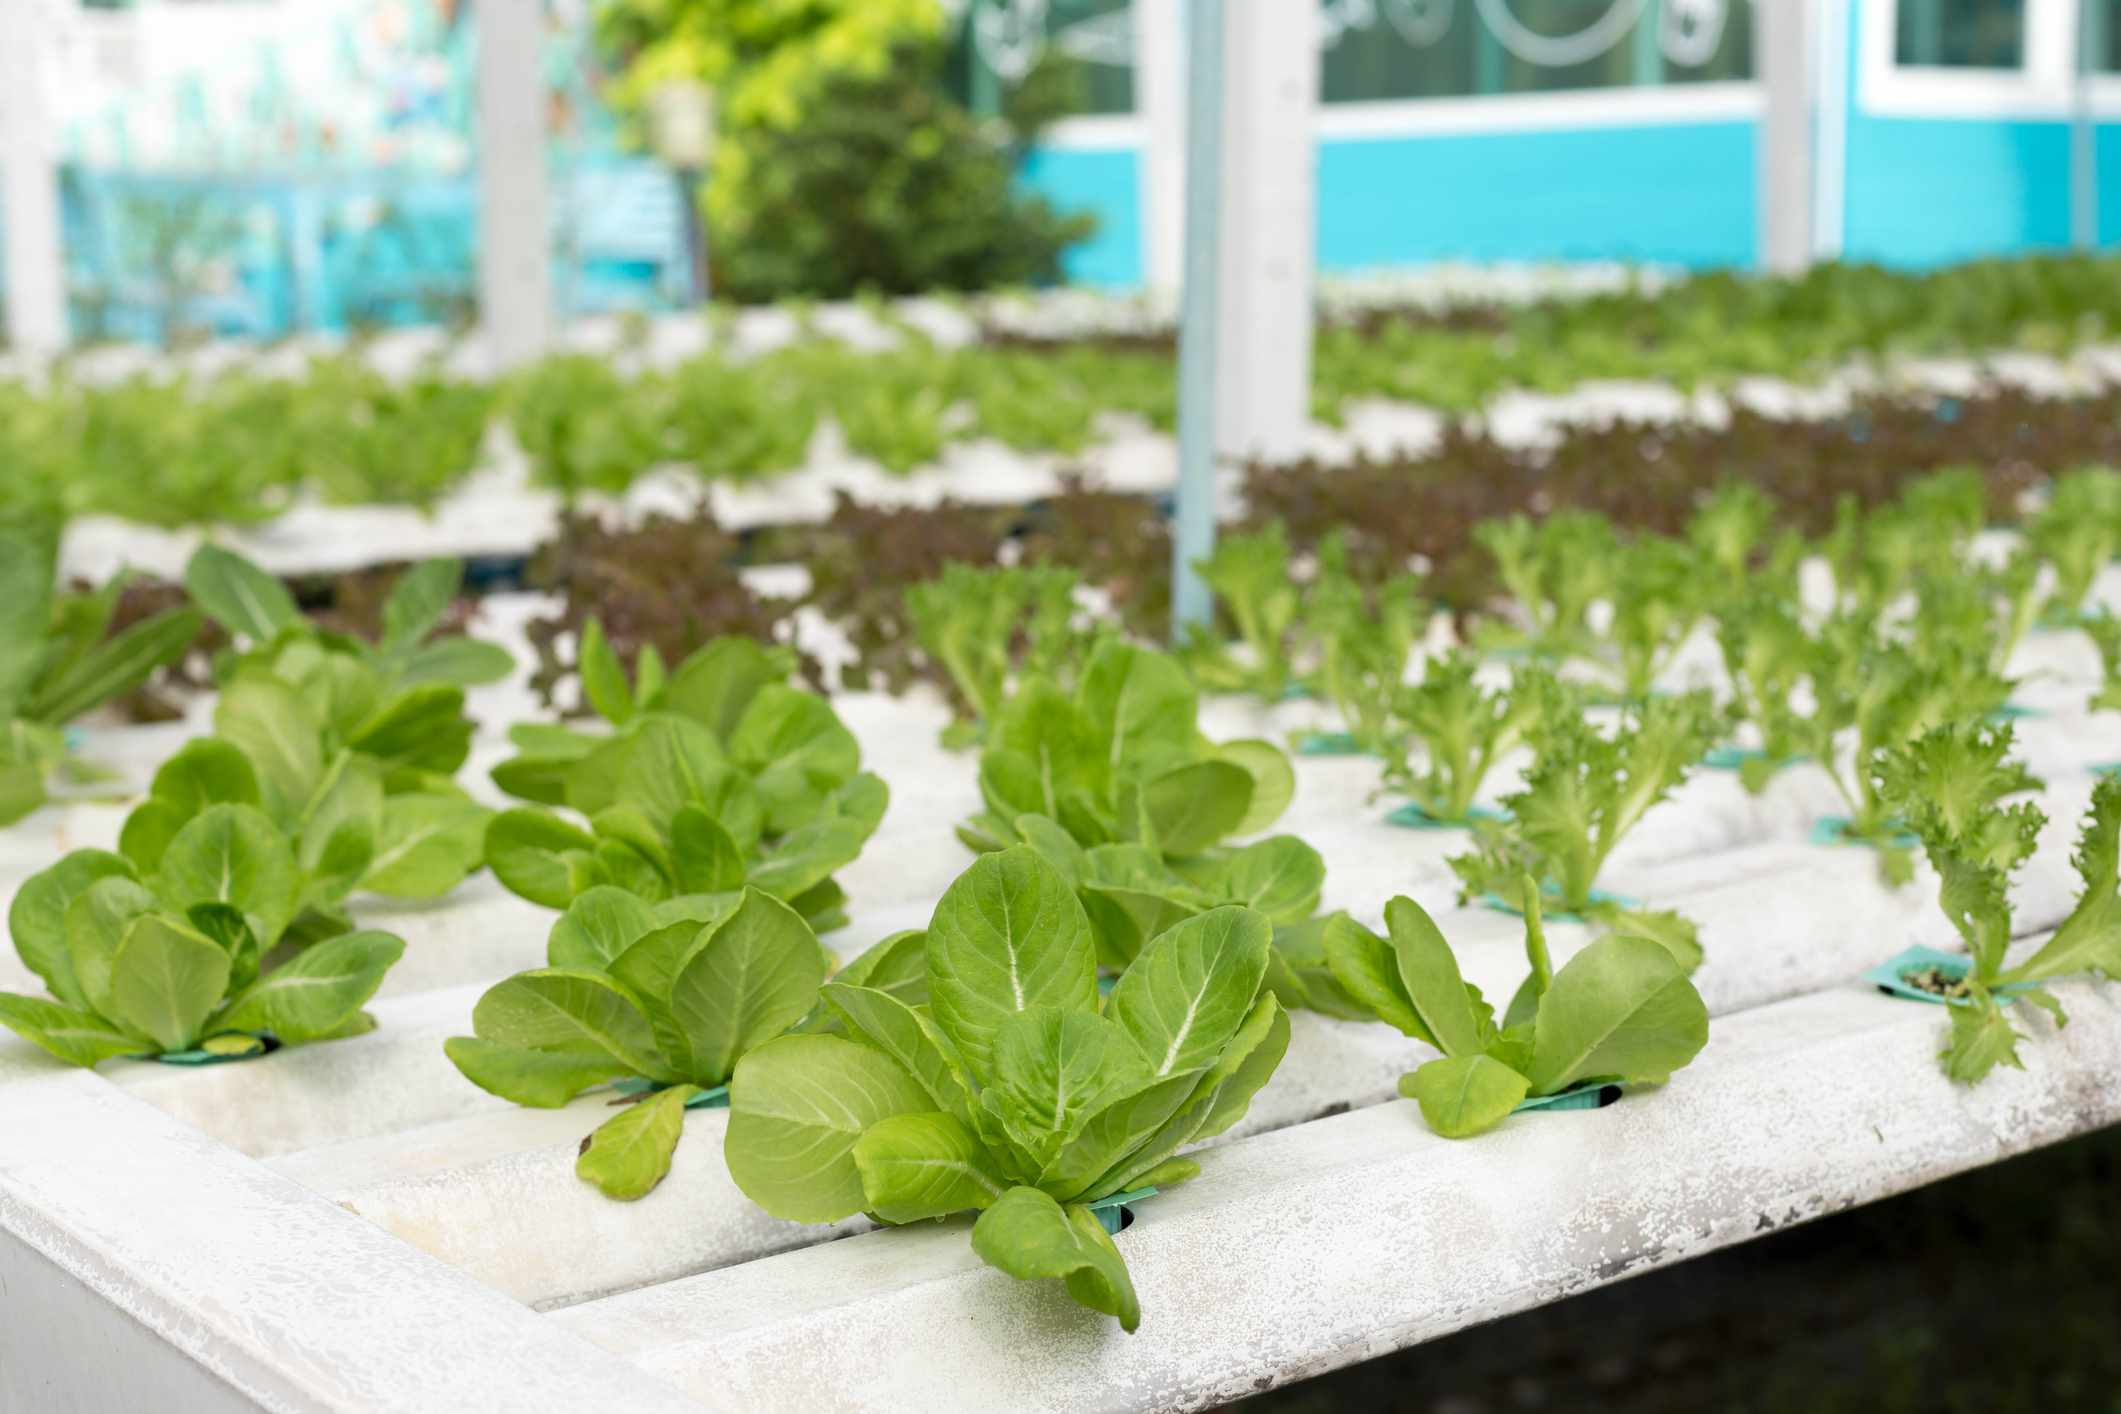 Growing spinach in an aquaponic garden